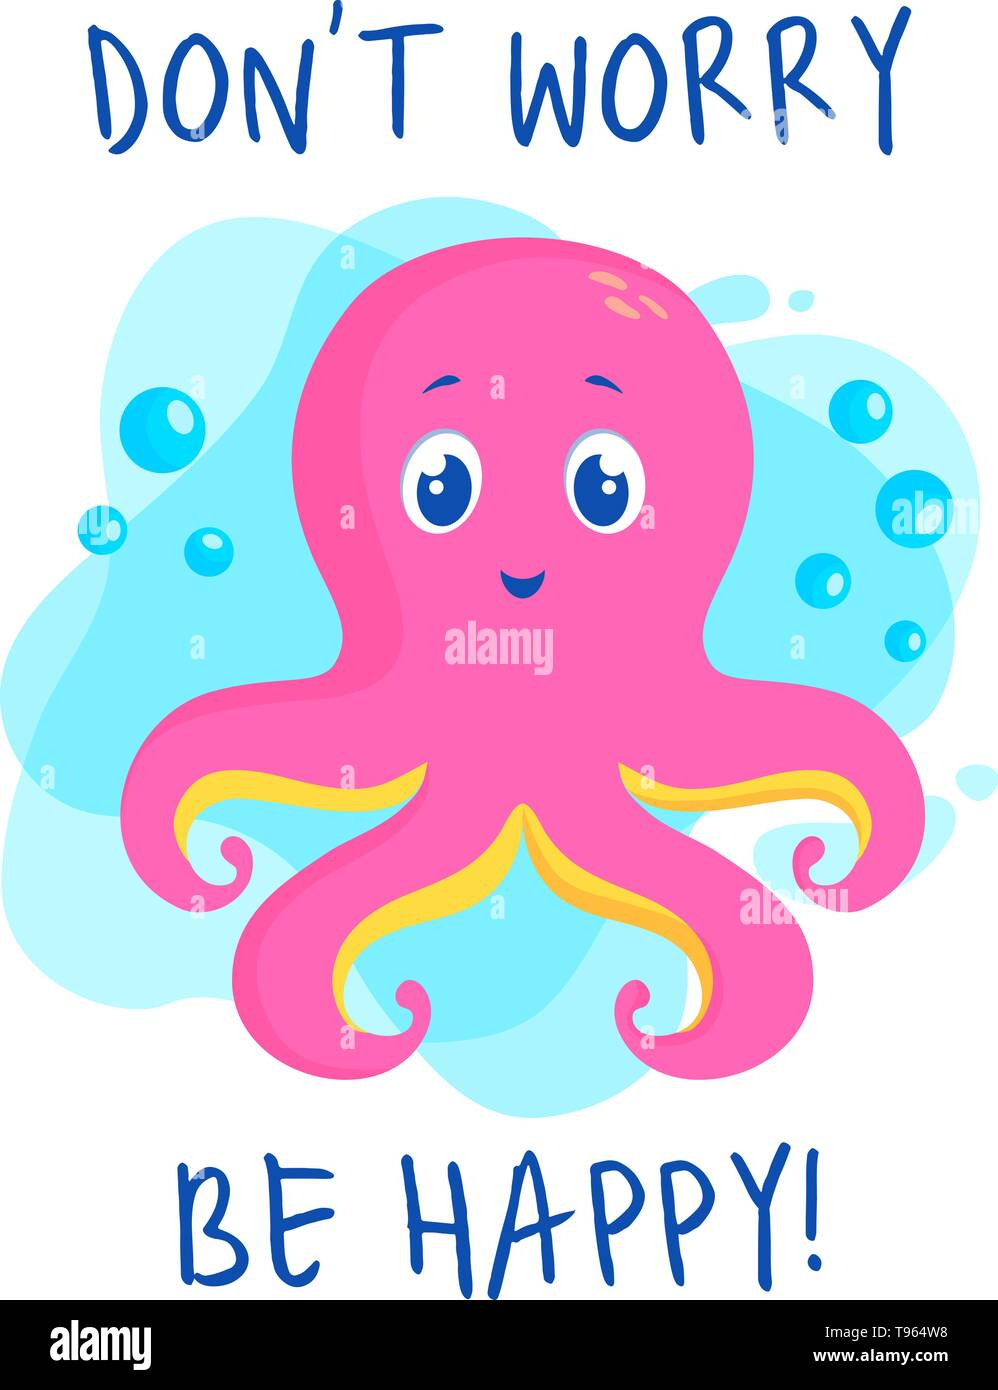 31c4a85e7 Illustration with cute pink octopus and slogan - Don't worry be happy!  Vector